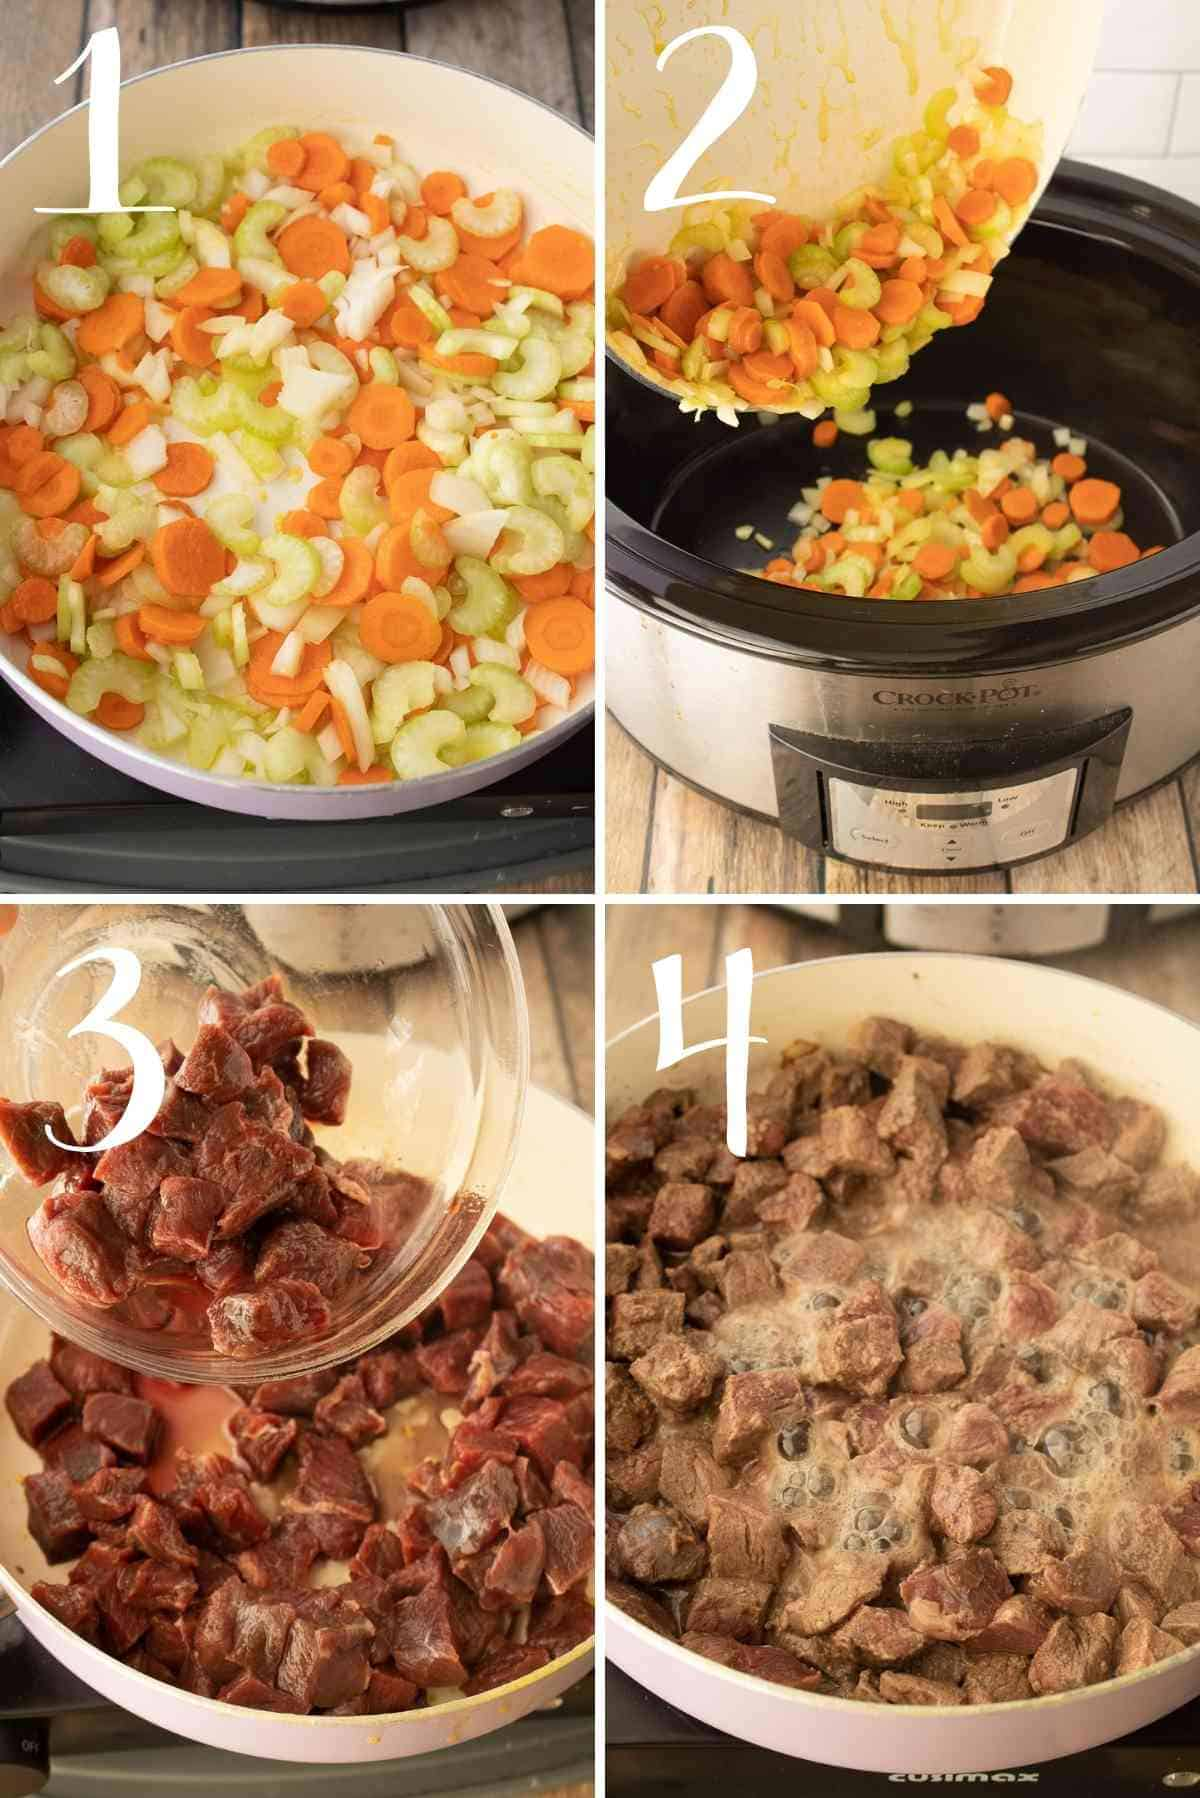 Vegetables sautéed and dumped into a crockpot followed by browning of beef.